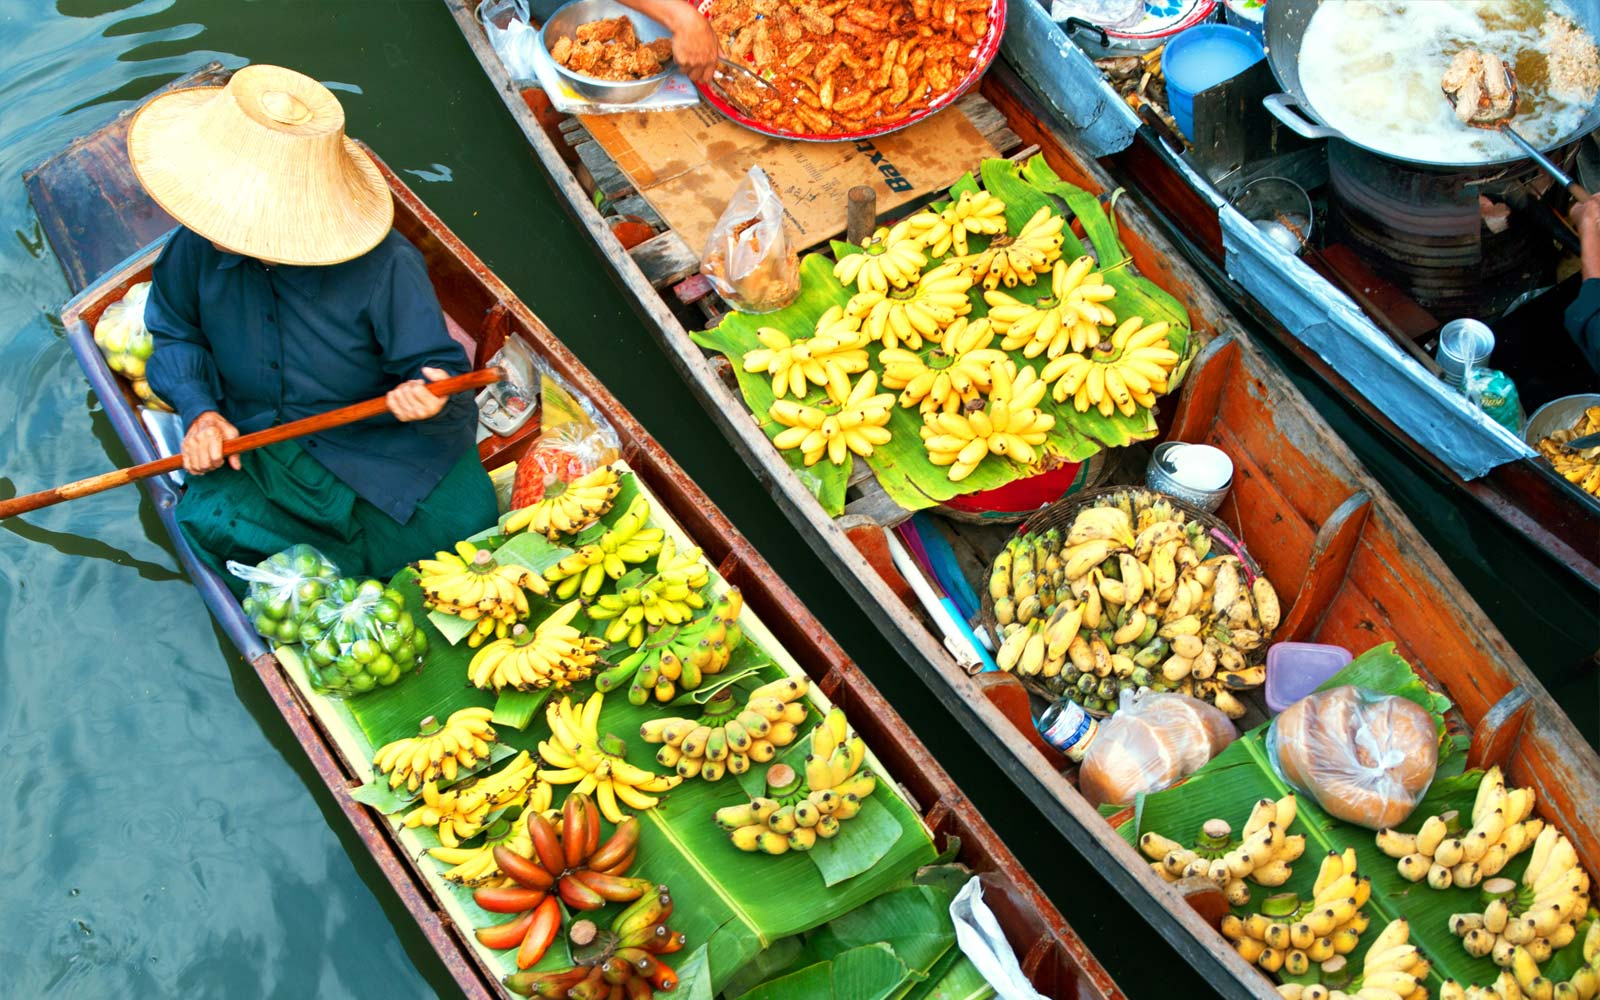 boat_canoe_local_produce_market_thailand_experience_fleewinter